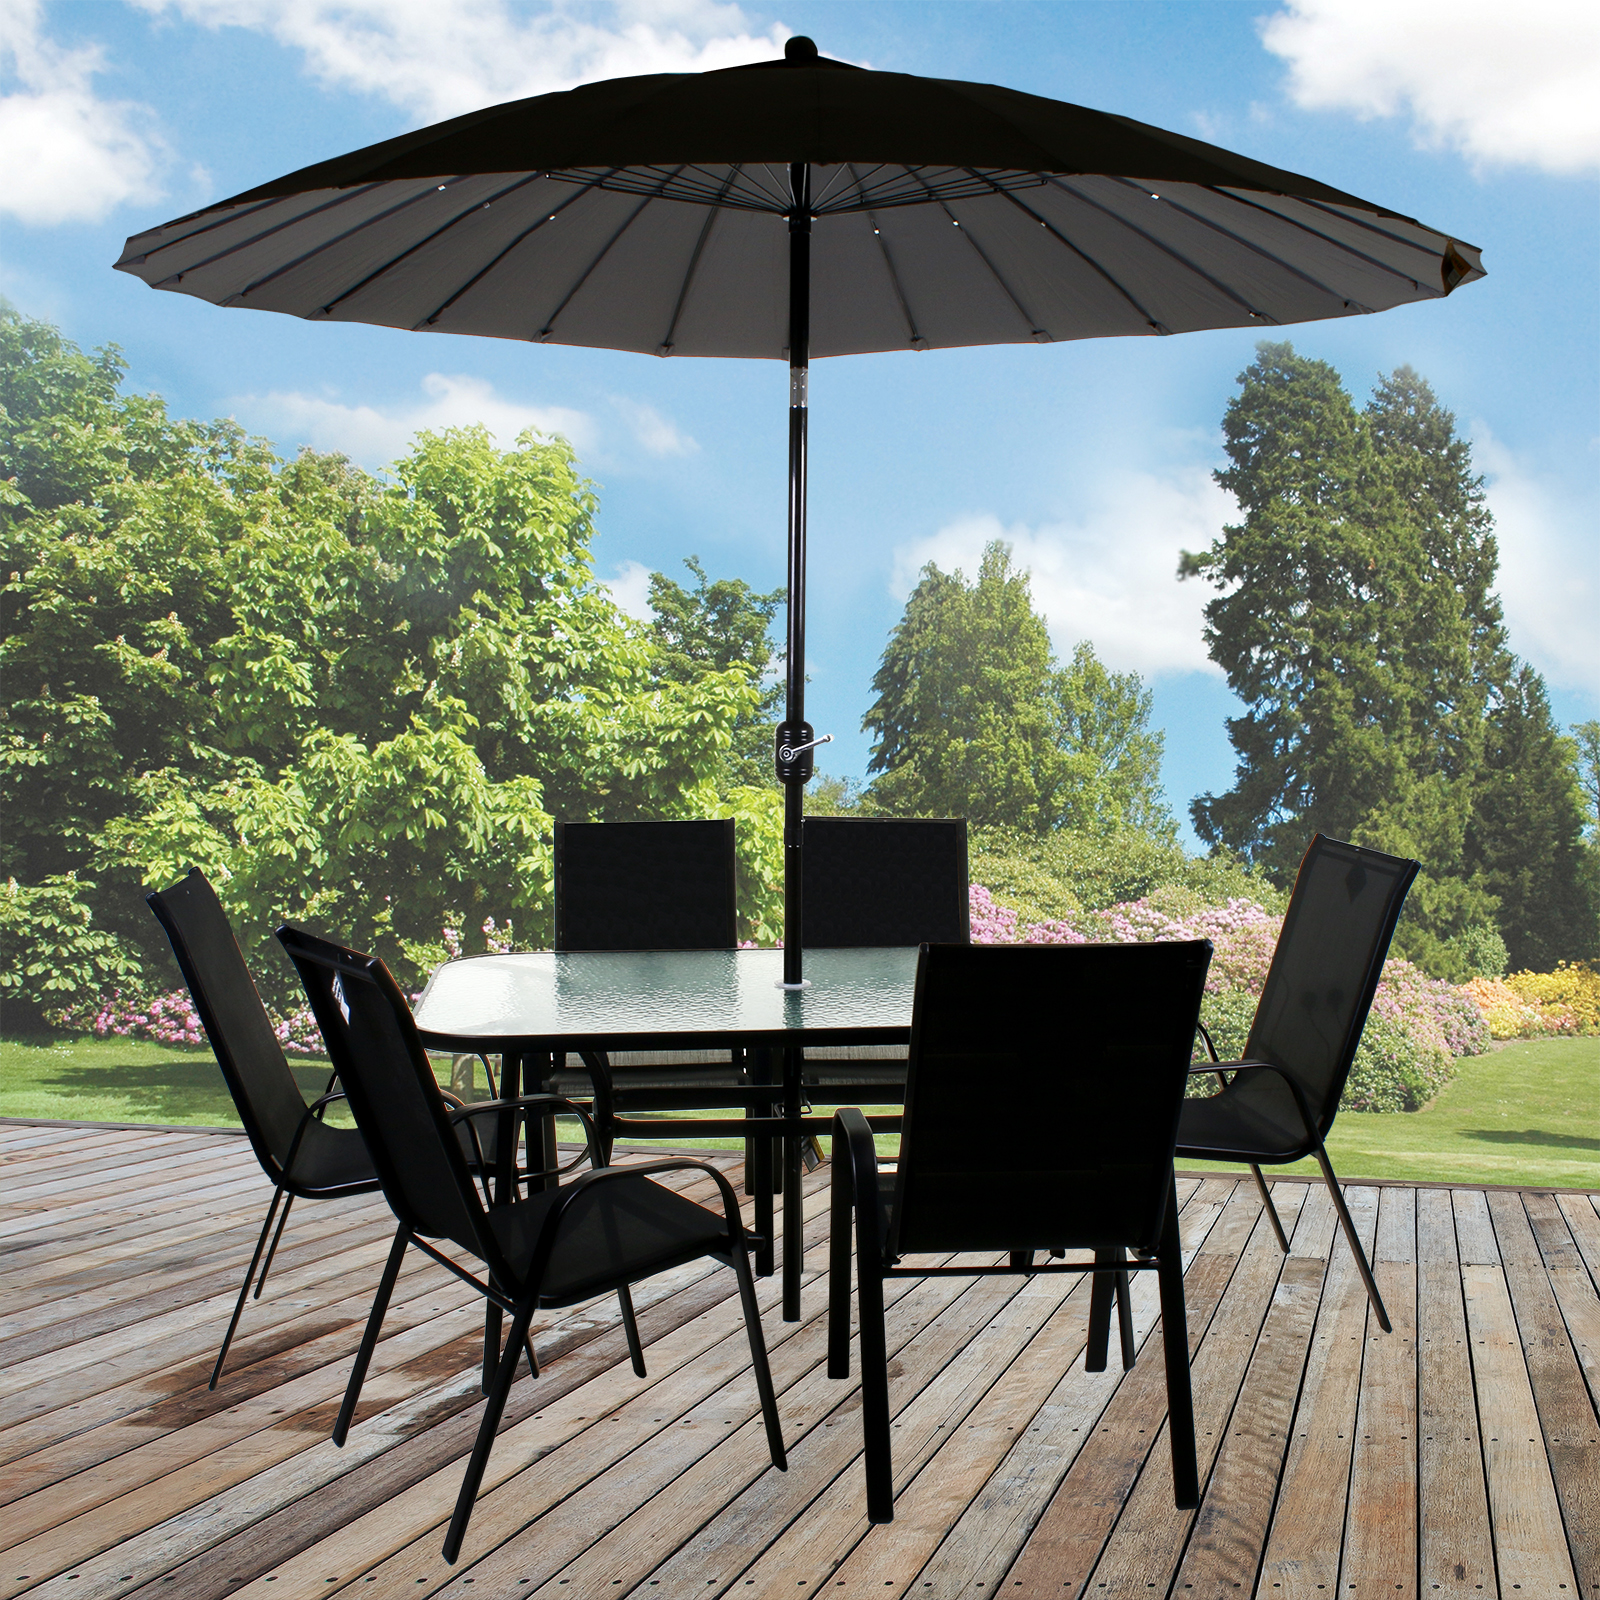 MARKO GLASS TOP TABLES METAL FRAME LEGS GARDEN OUTDOOR INDOOR BISTRO CAFE EBay